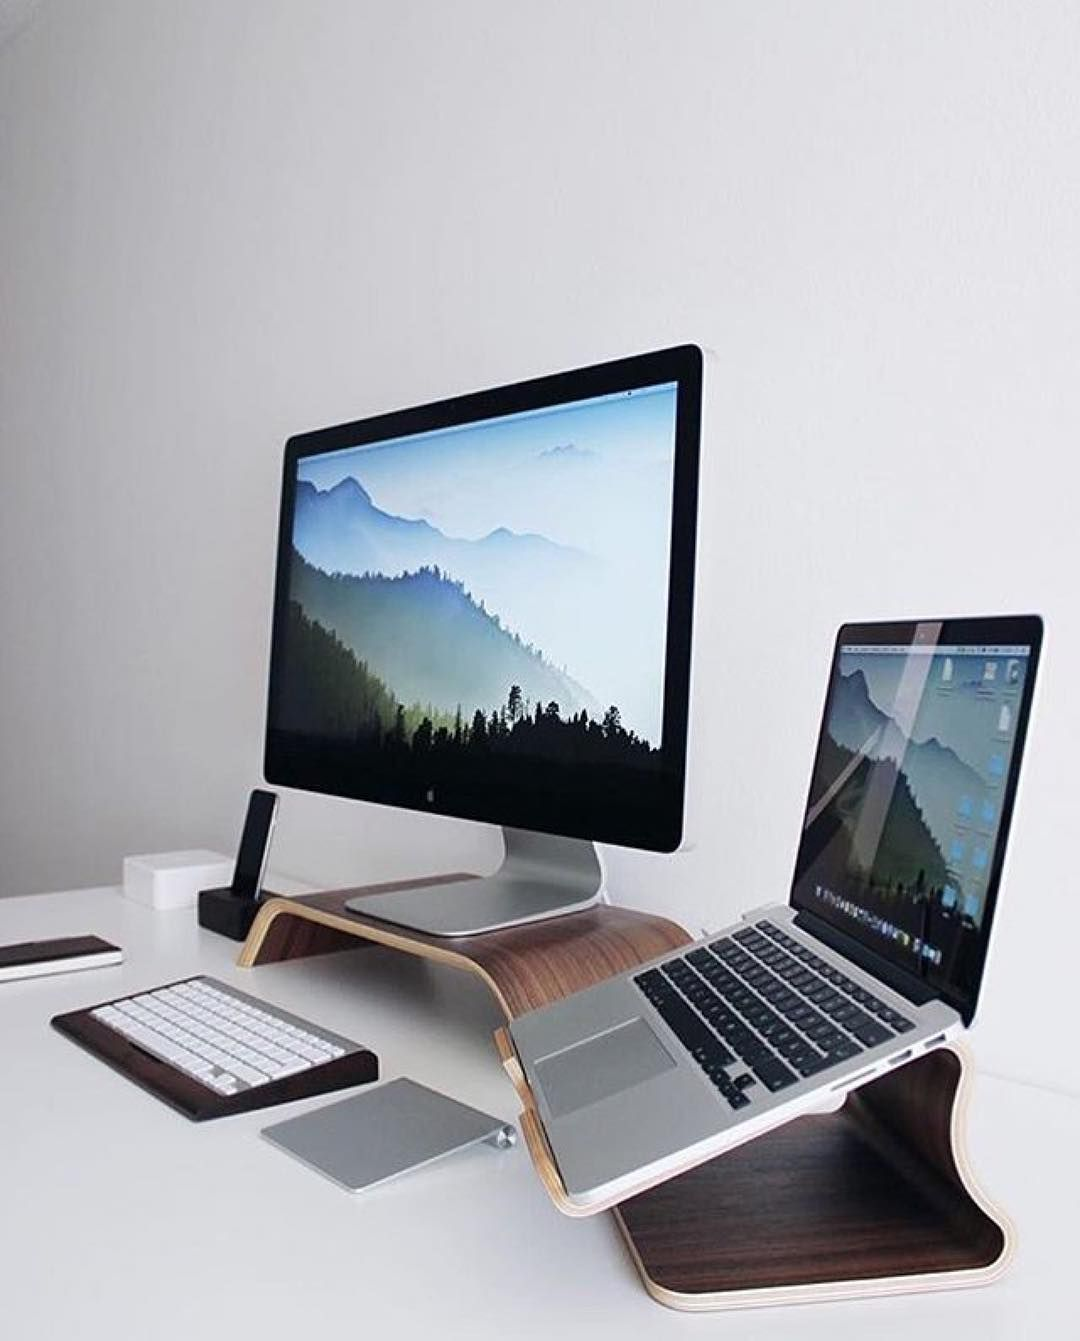 Technigadgets photo the perfect setup in 2019 home - Small office setup ideas ...